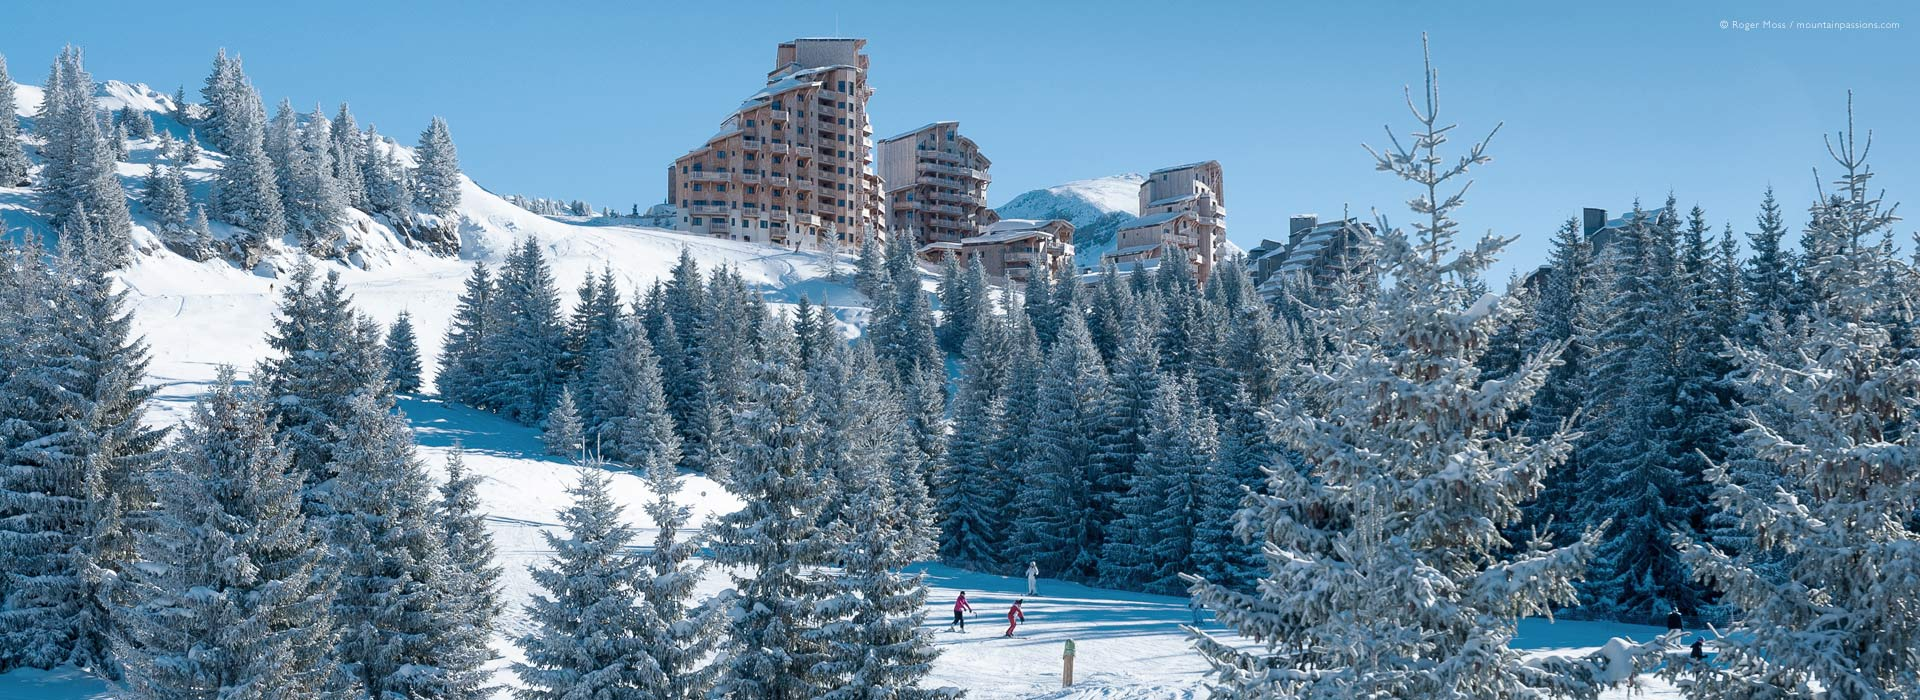 Skiers on tree-lined piste below Avoriaz ski resort